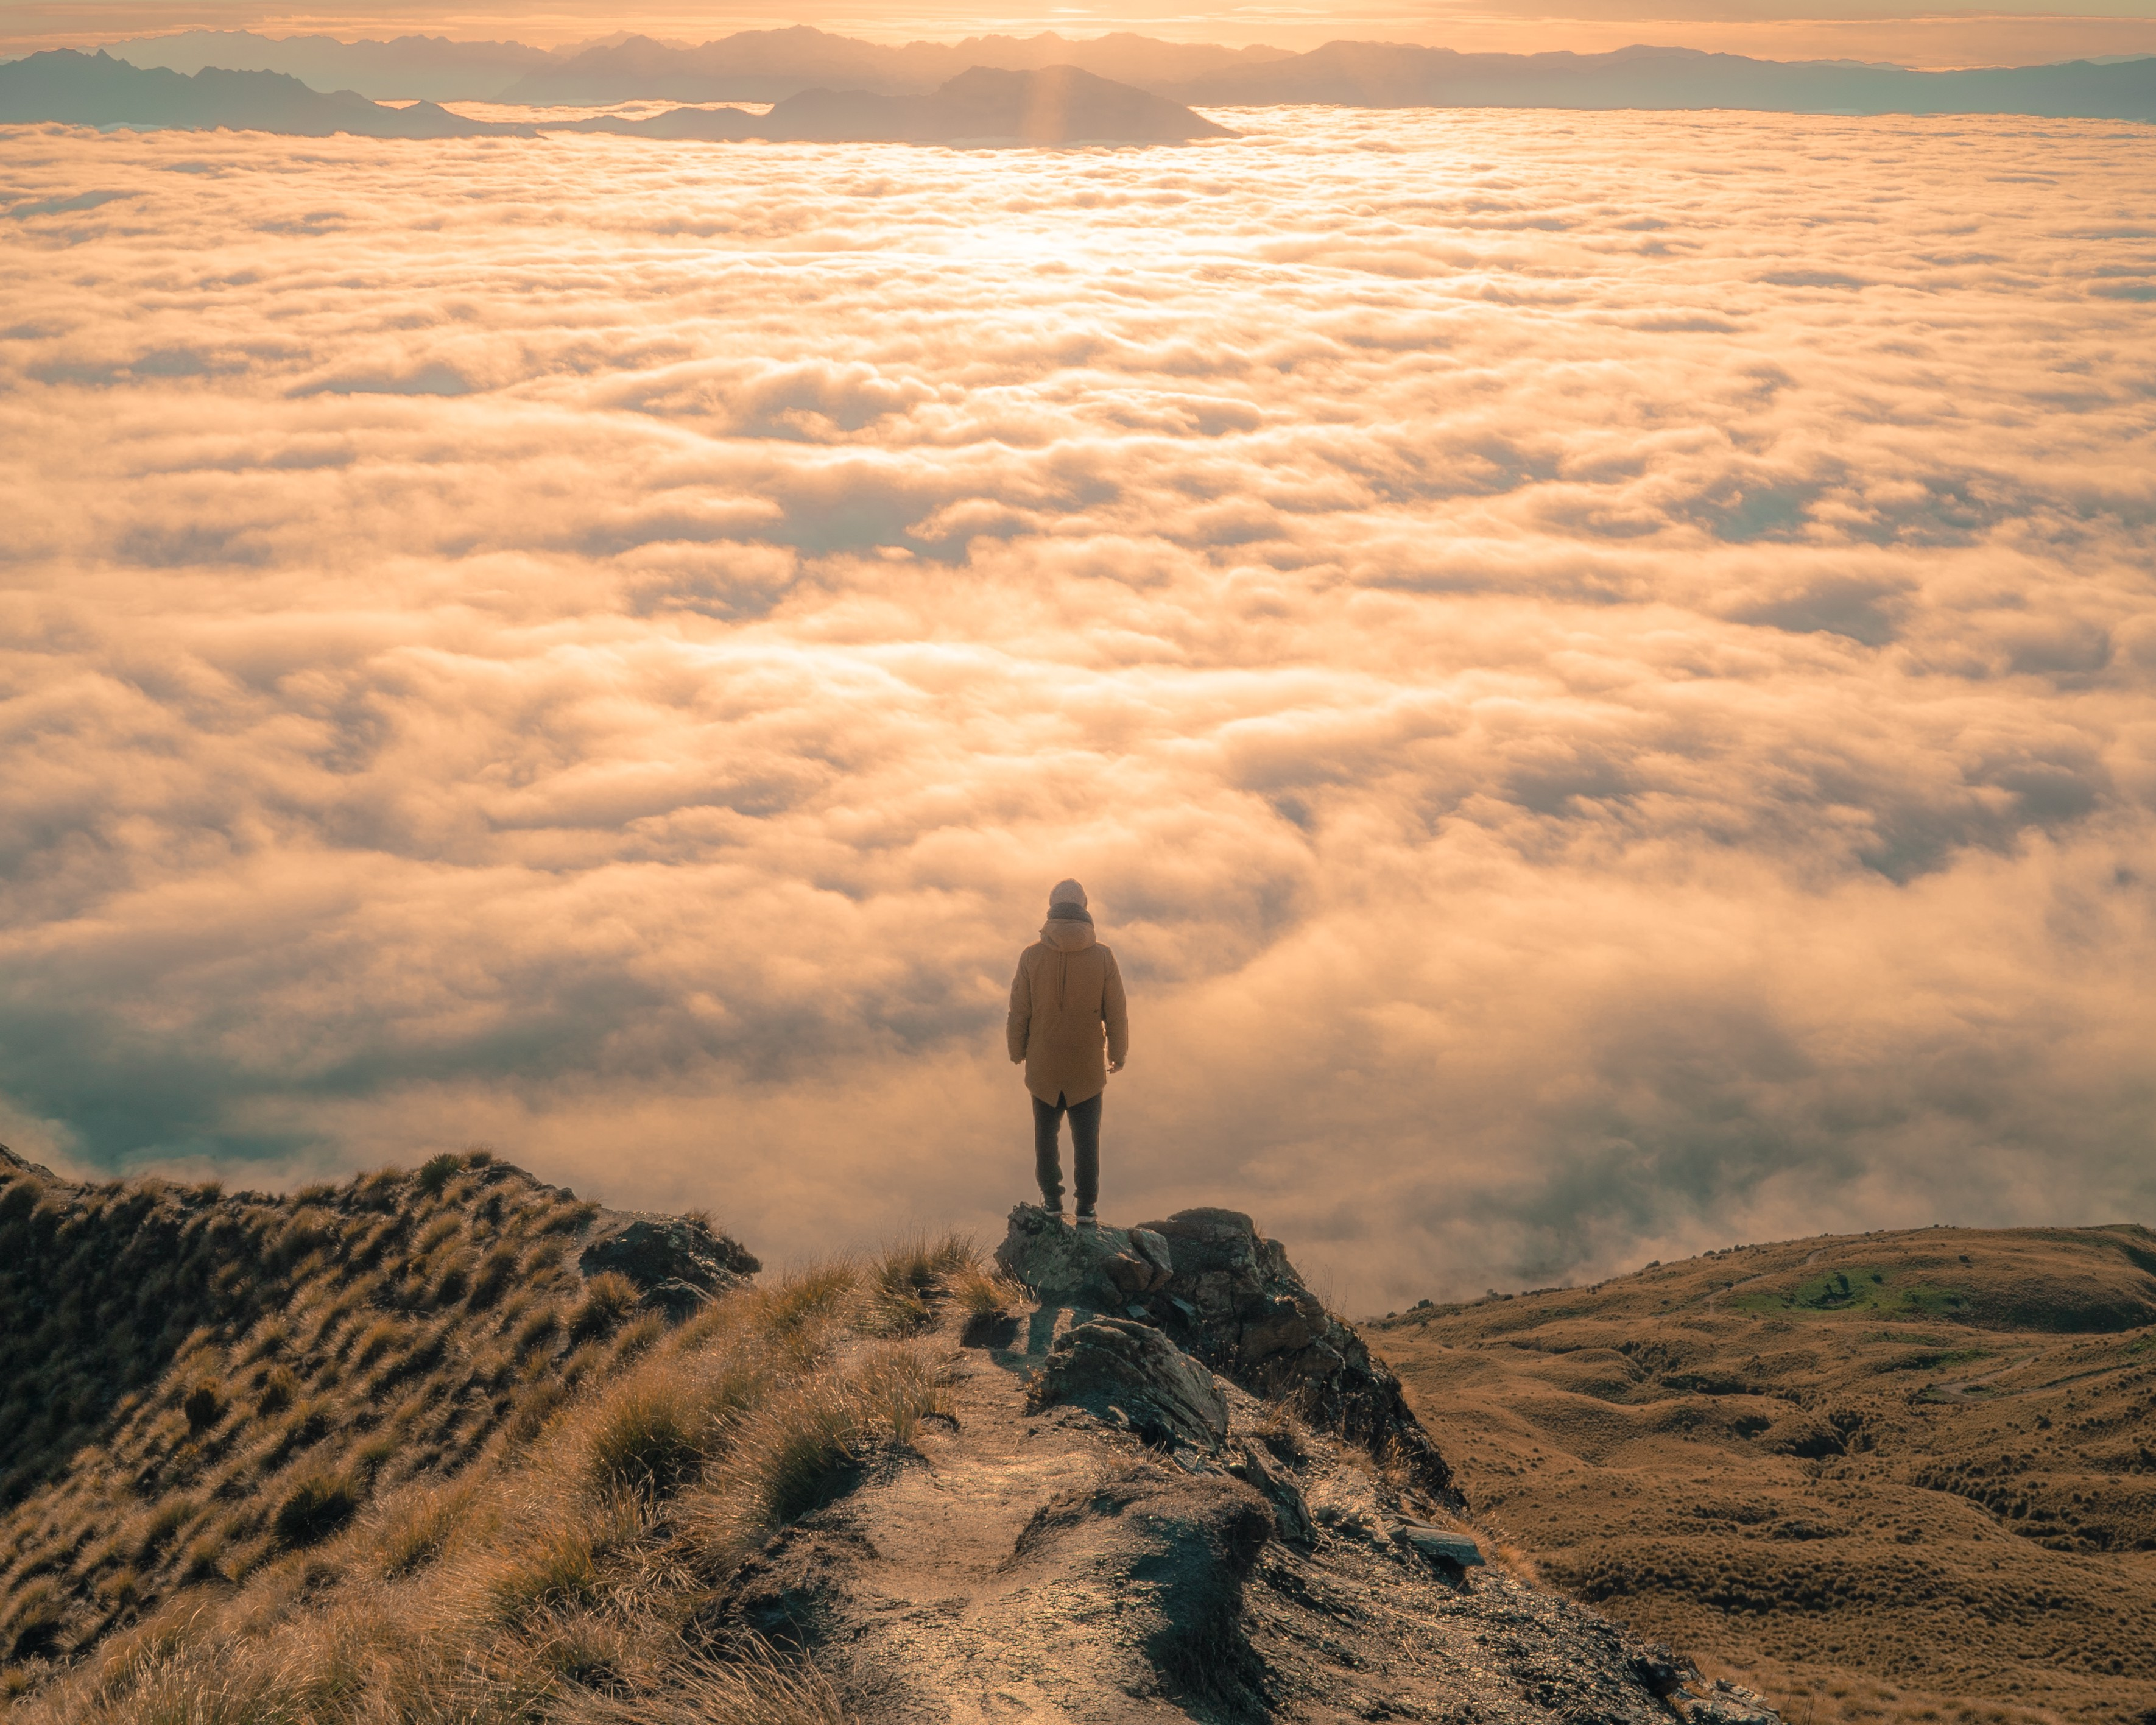 A man standing up on a mountain top, gazing out into the clouds